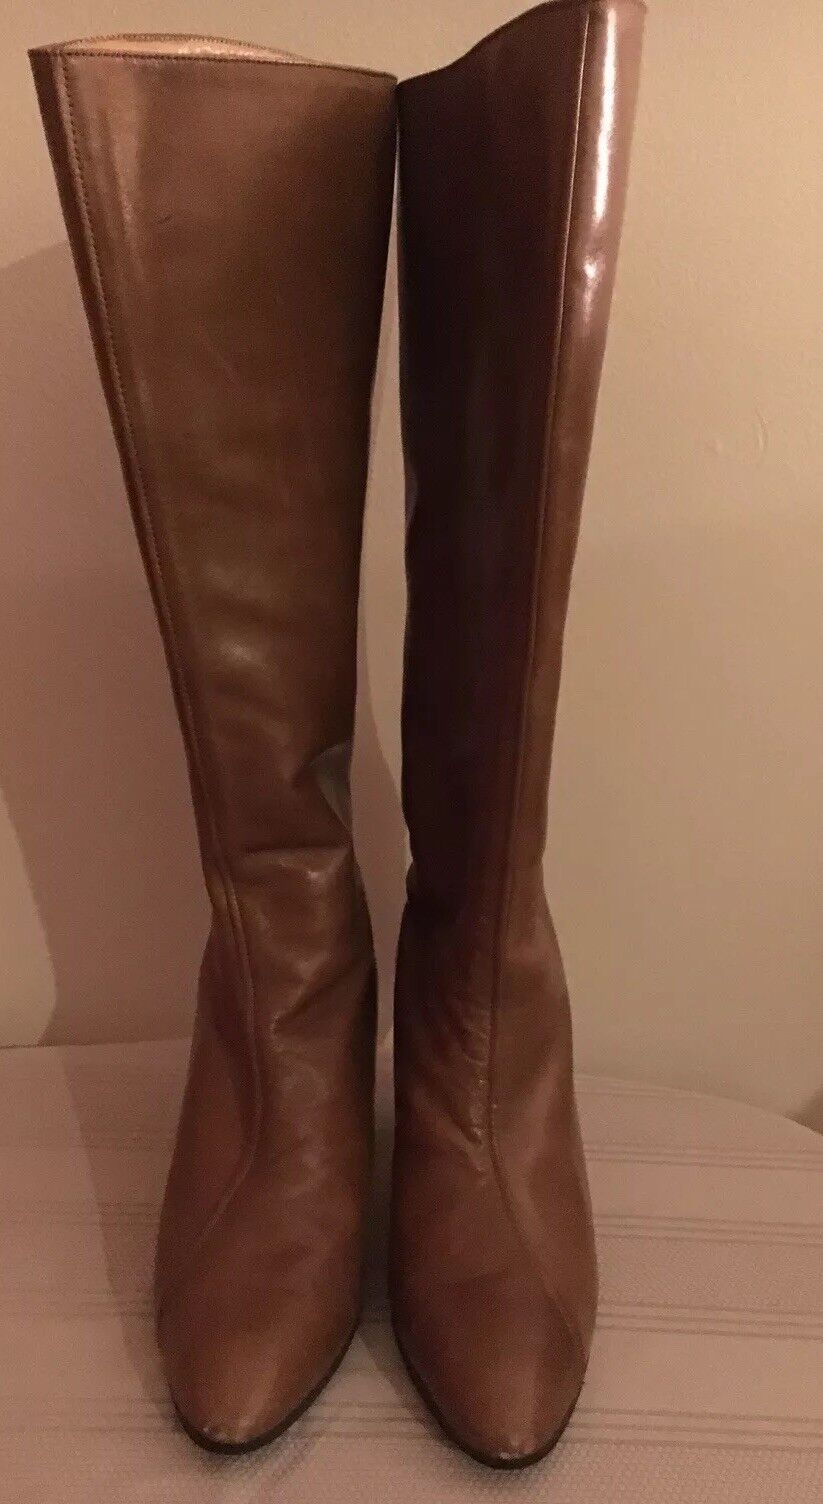 Women's US 6.5 Barefoot Original Leather High Heels Boots  made in Spain Vintage